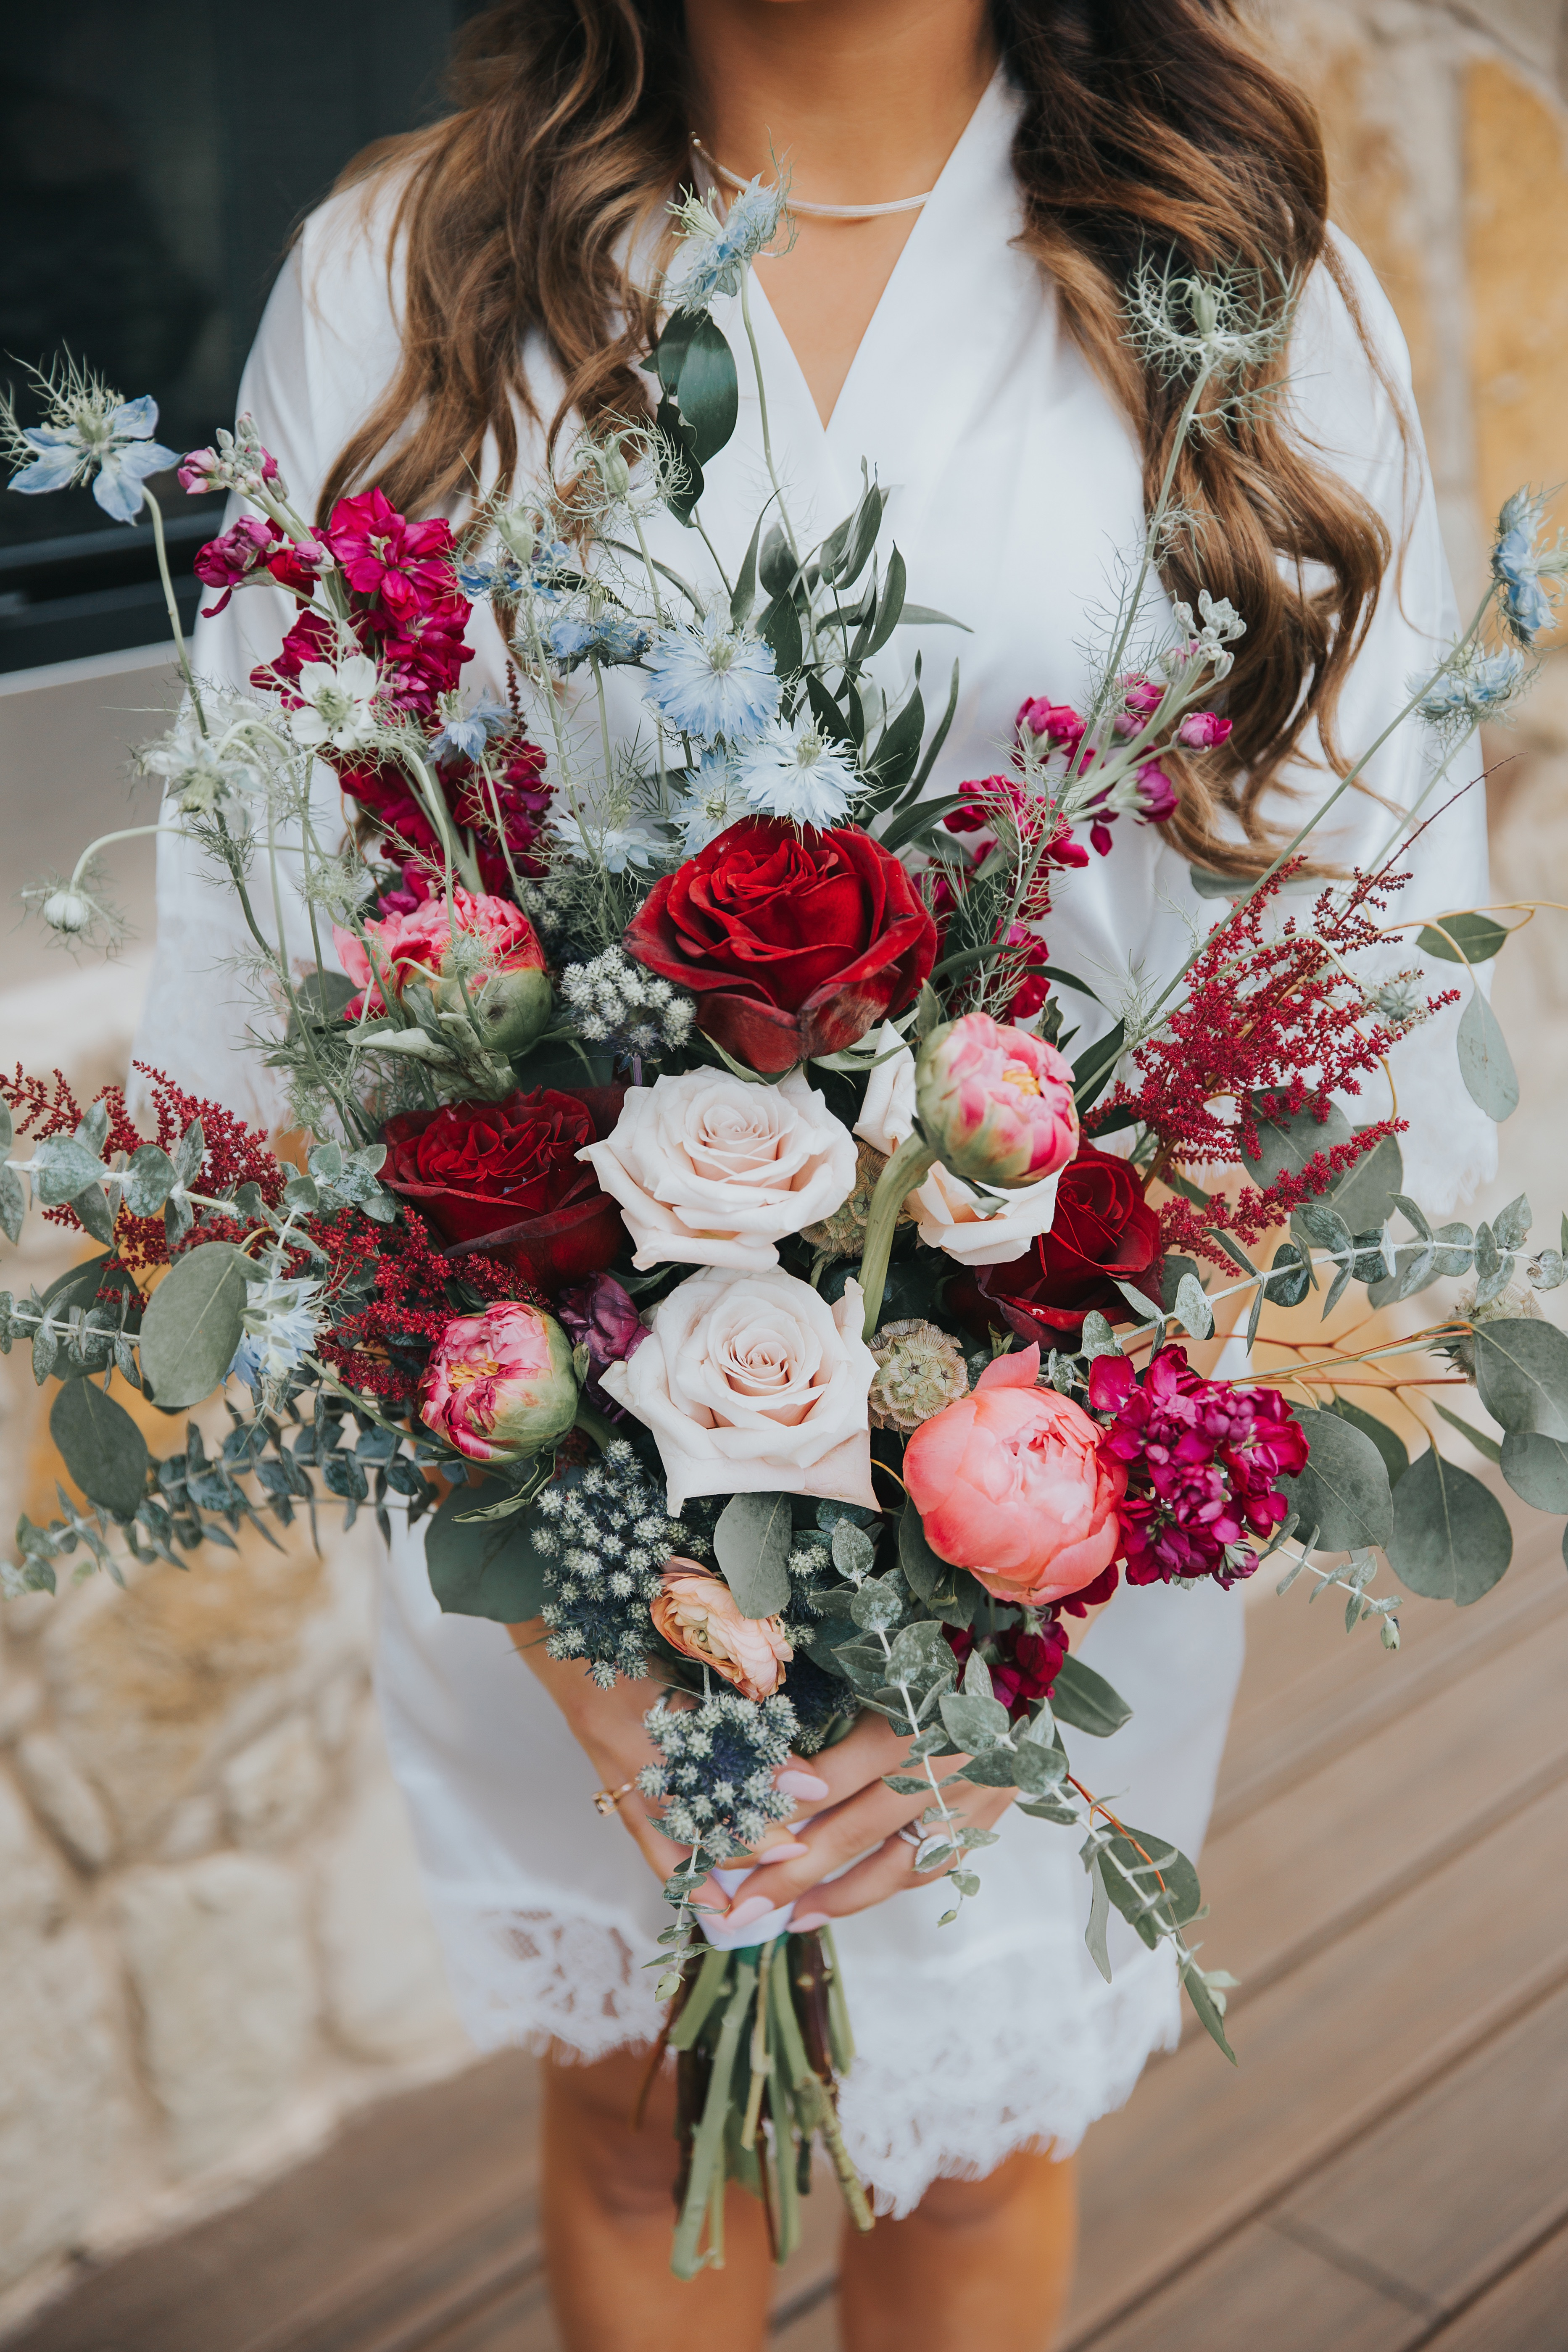 Most Beautiful Flower And Color Combinations For Your Wedding Azazie Blog